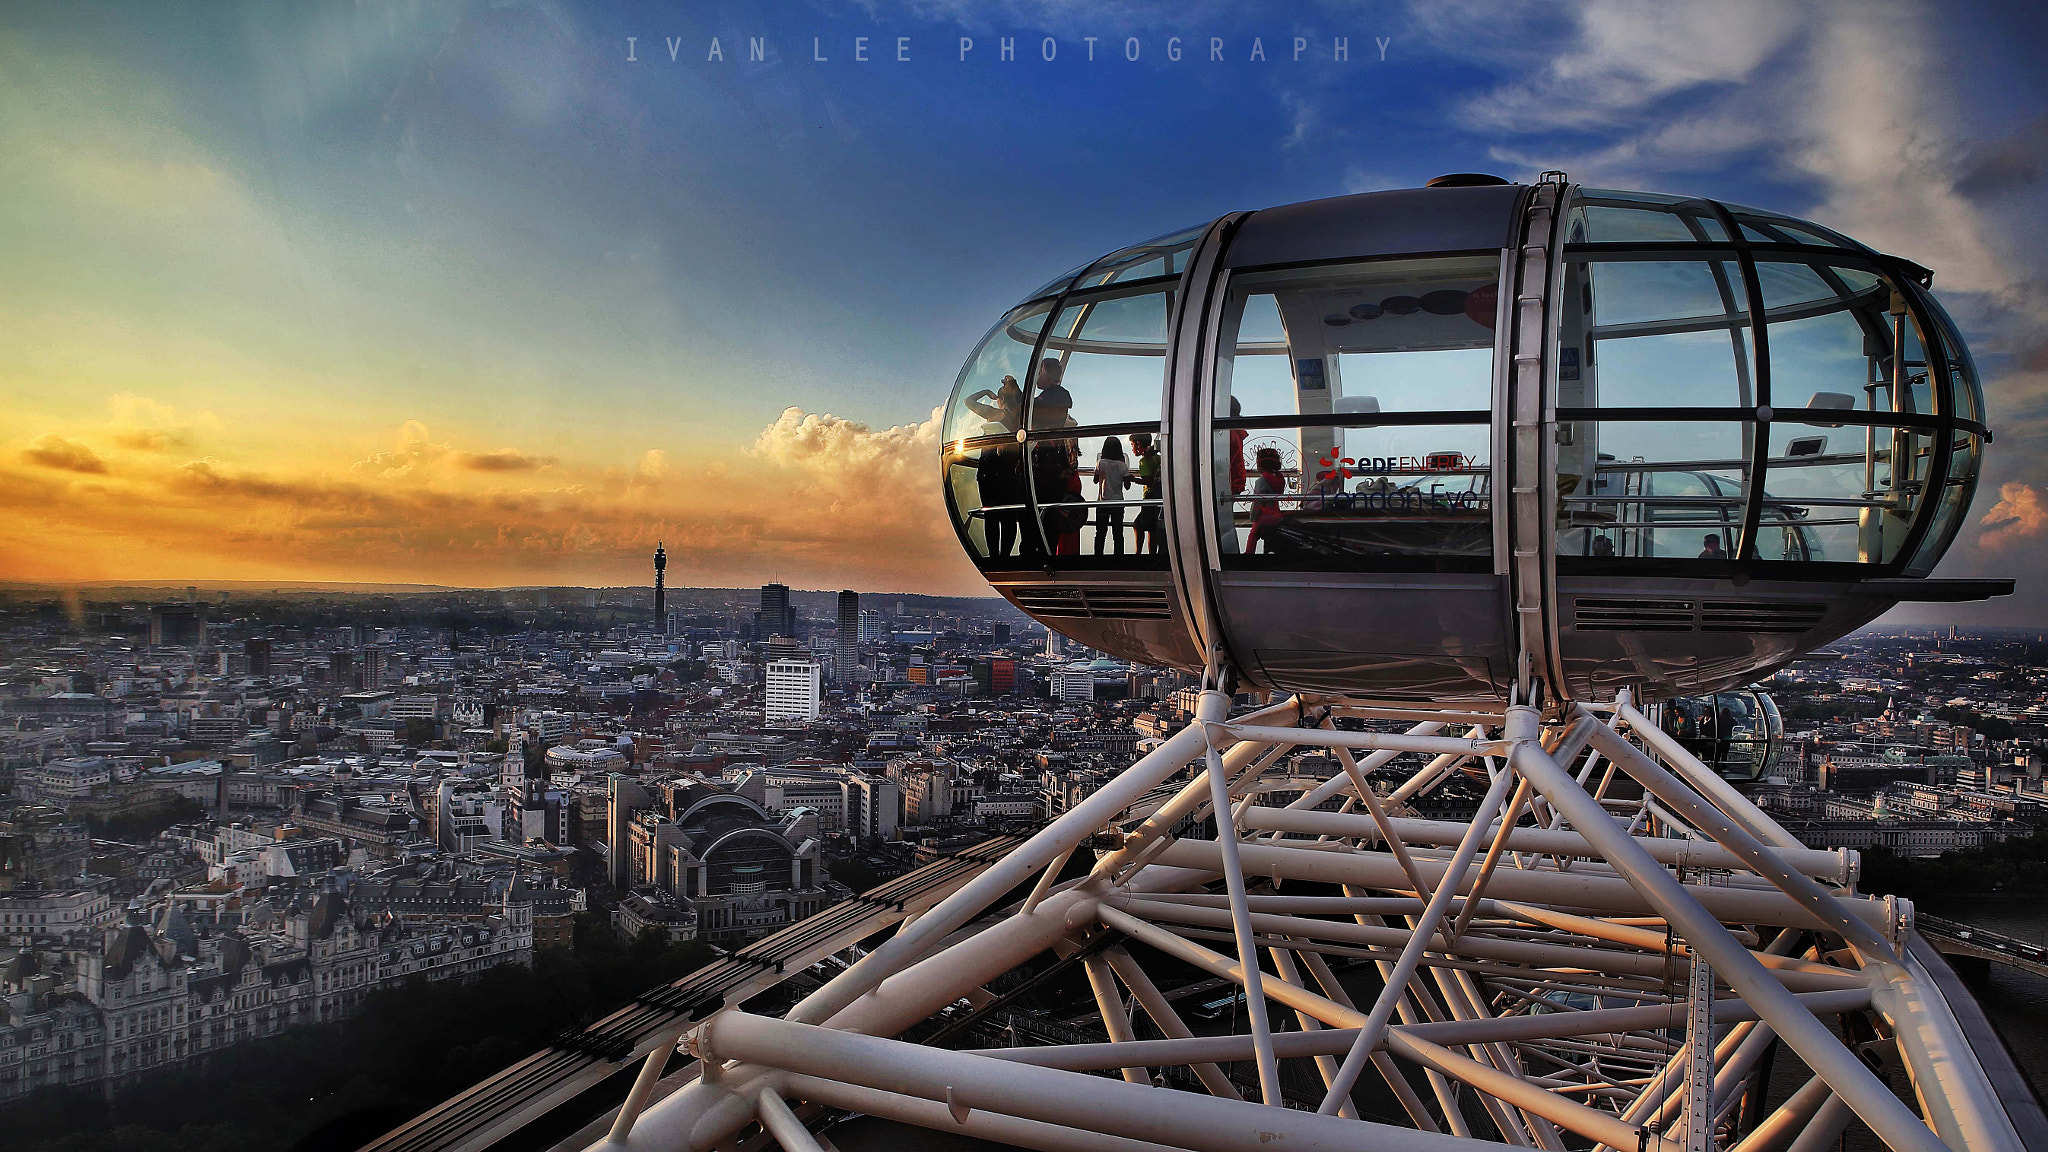 Photograph Top of London by Ivan Lee on 500px